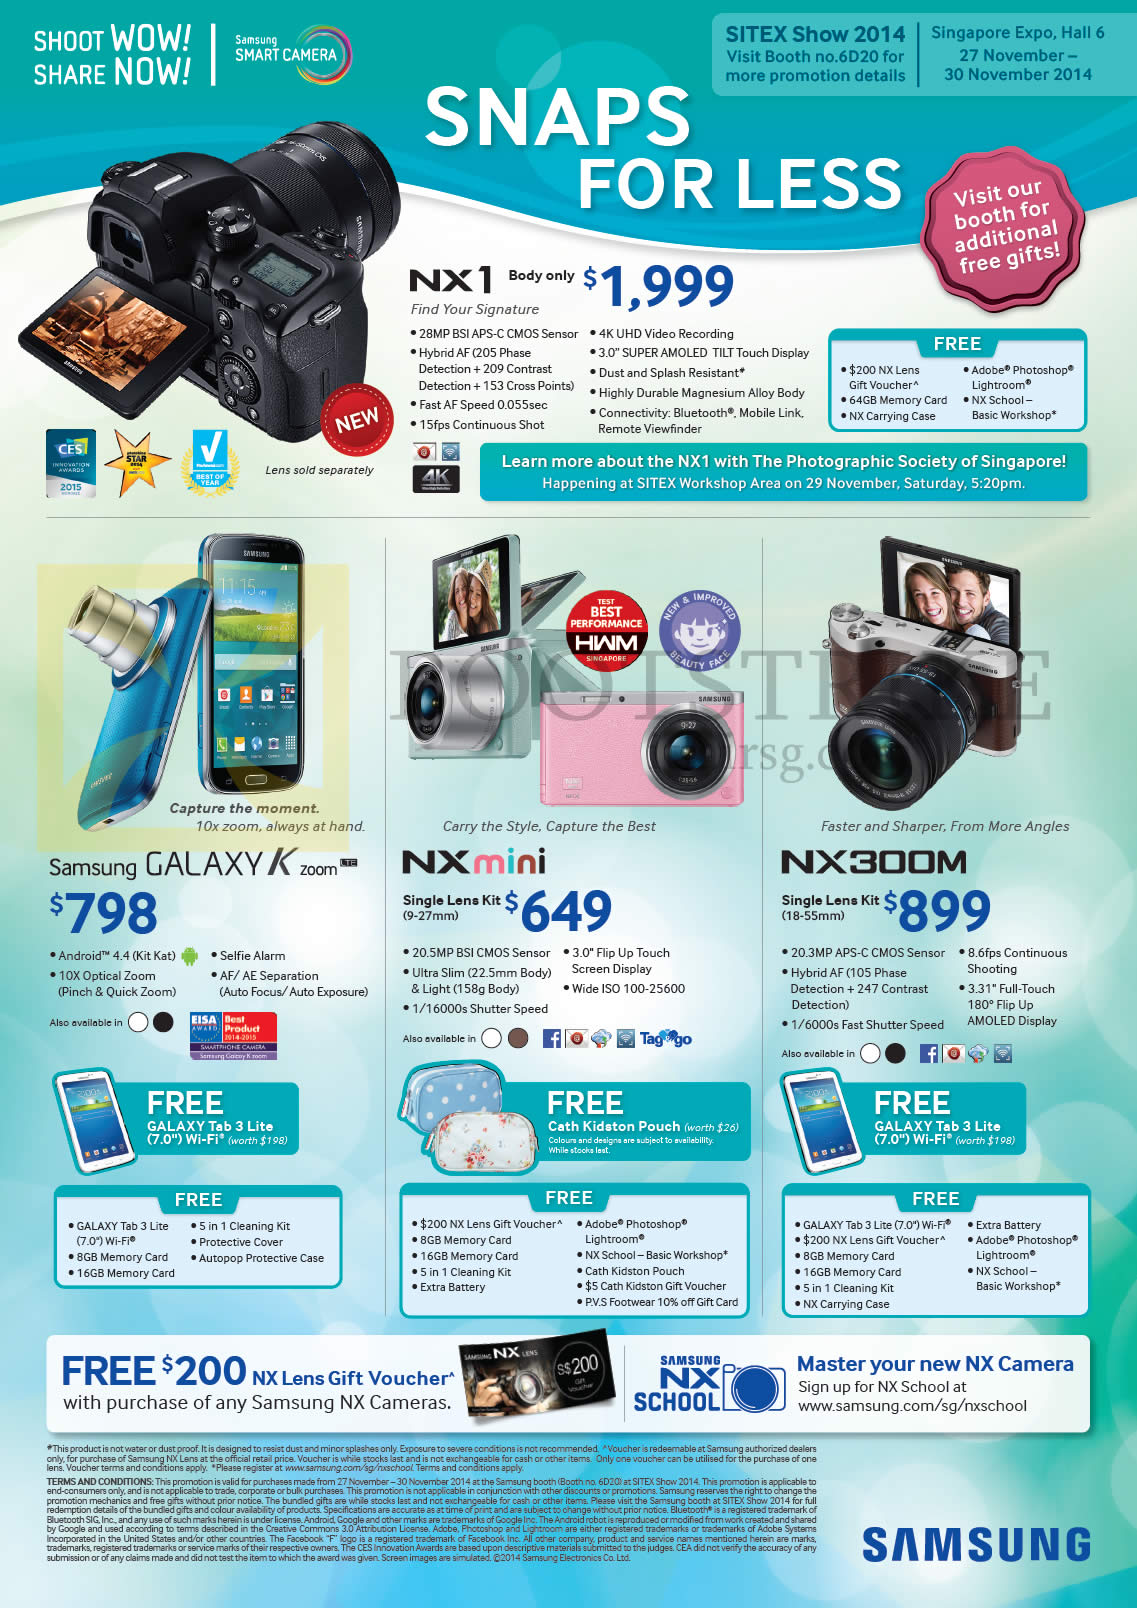 Samsung Digital Cameras NX1, Galaxy K Zoom, NX Mini, NX 300M